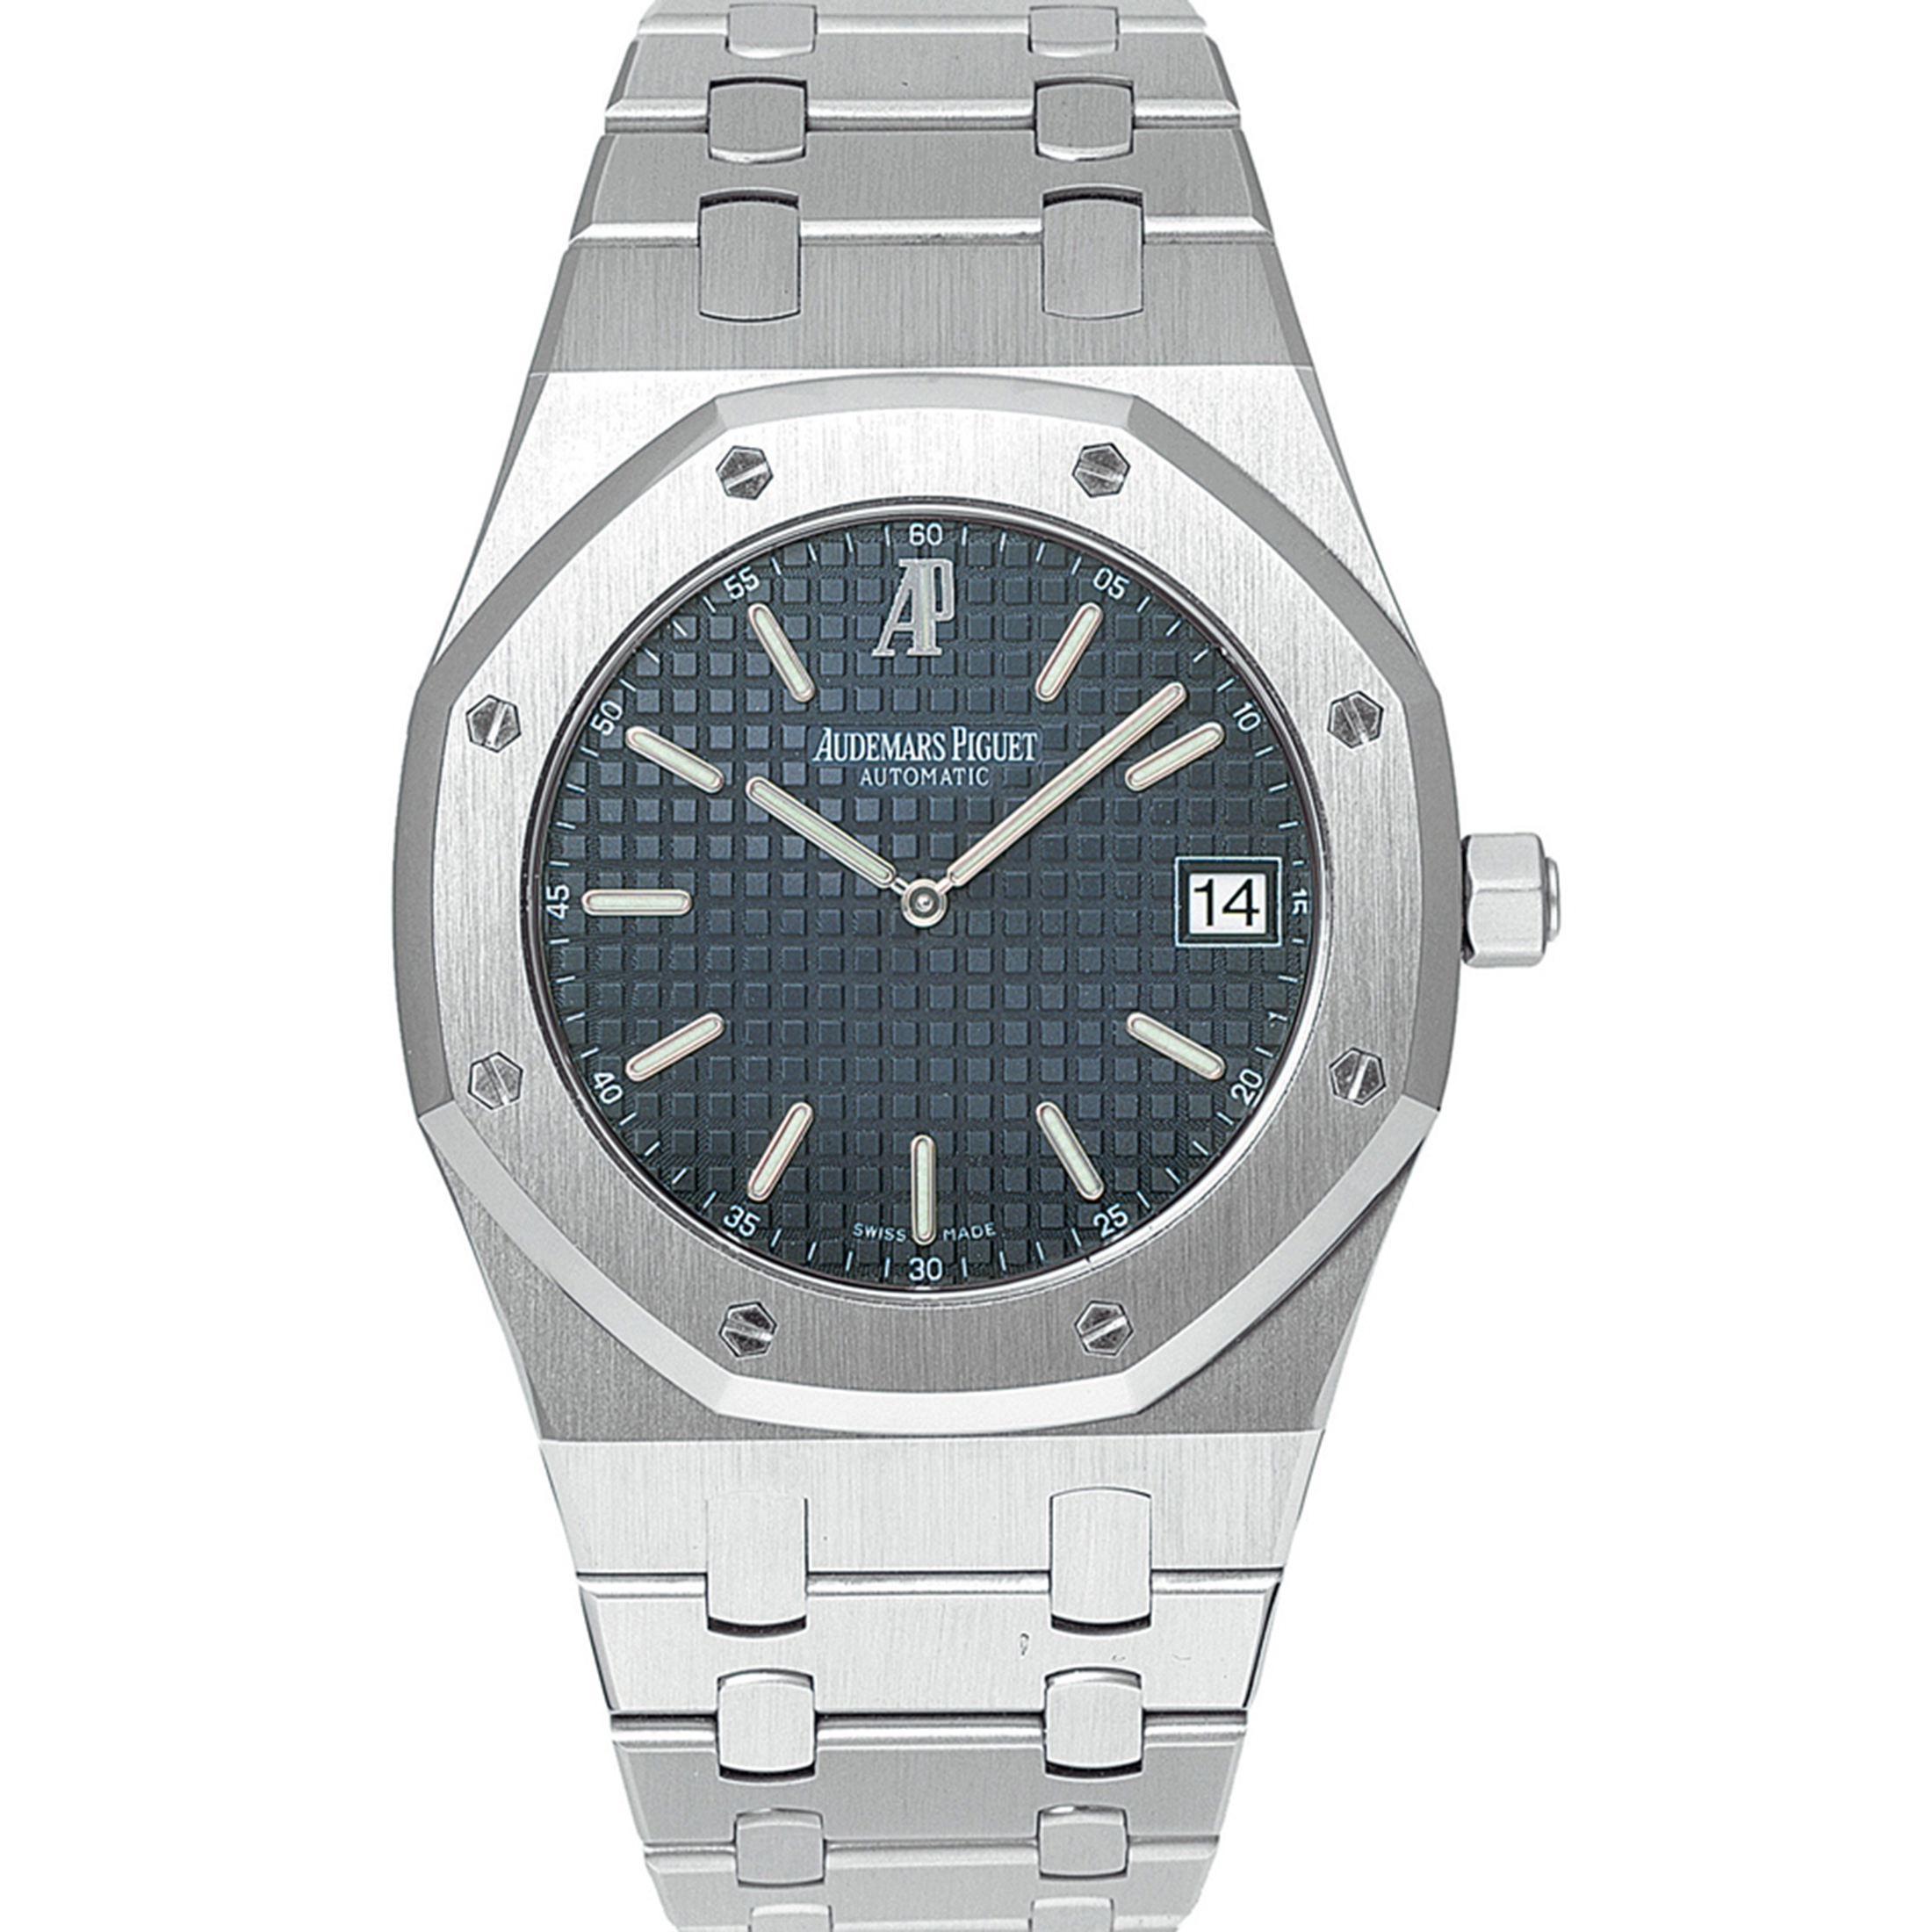 Royal Oak Date Jumbo 15202ST.OO.0944ST.02